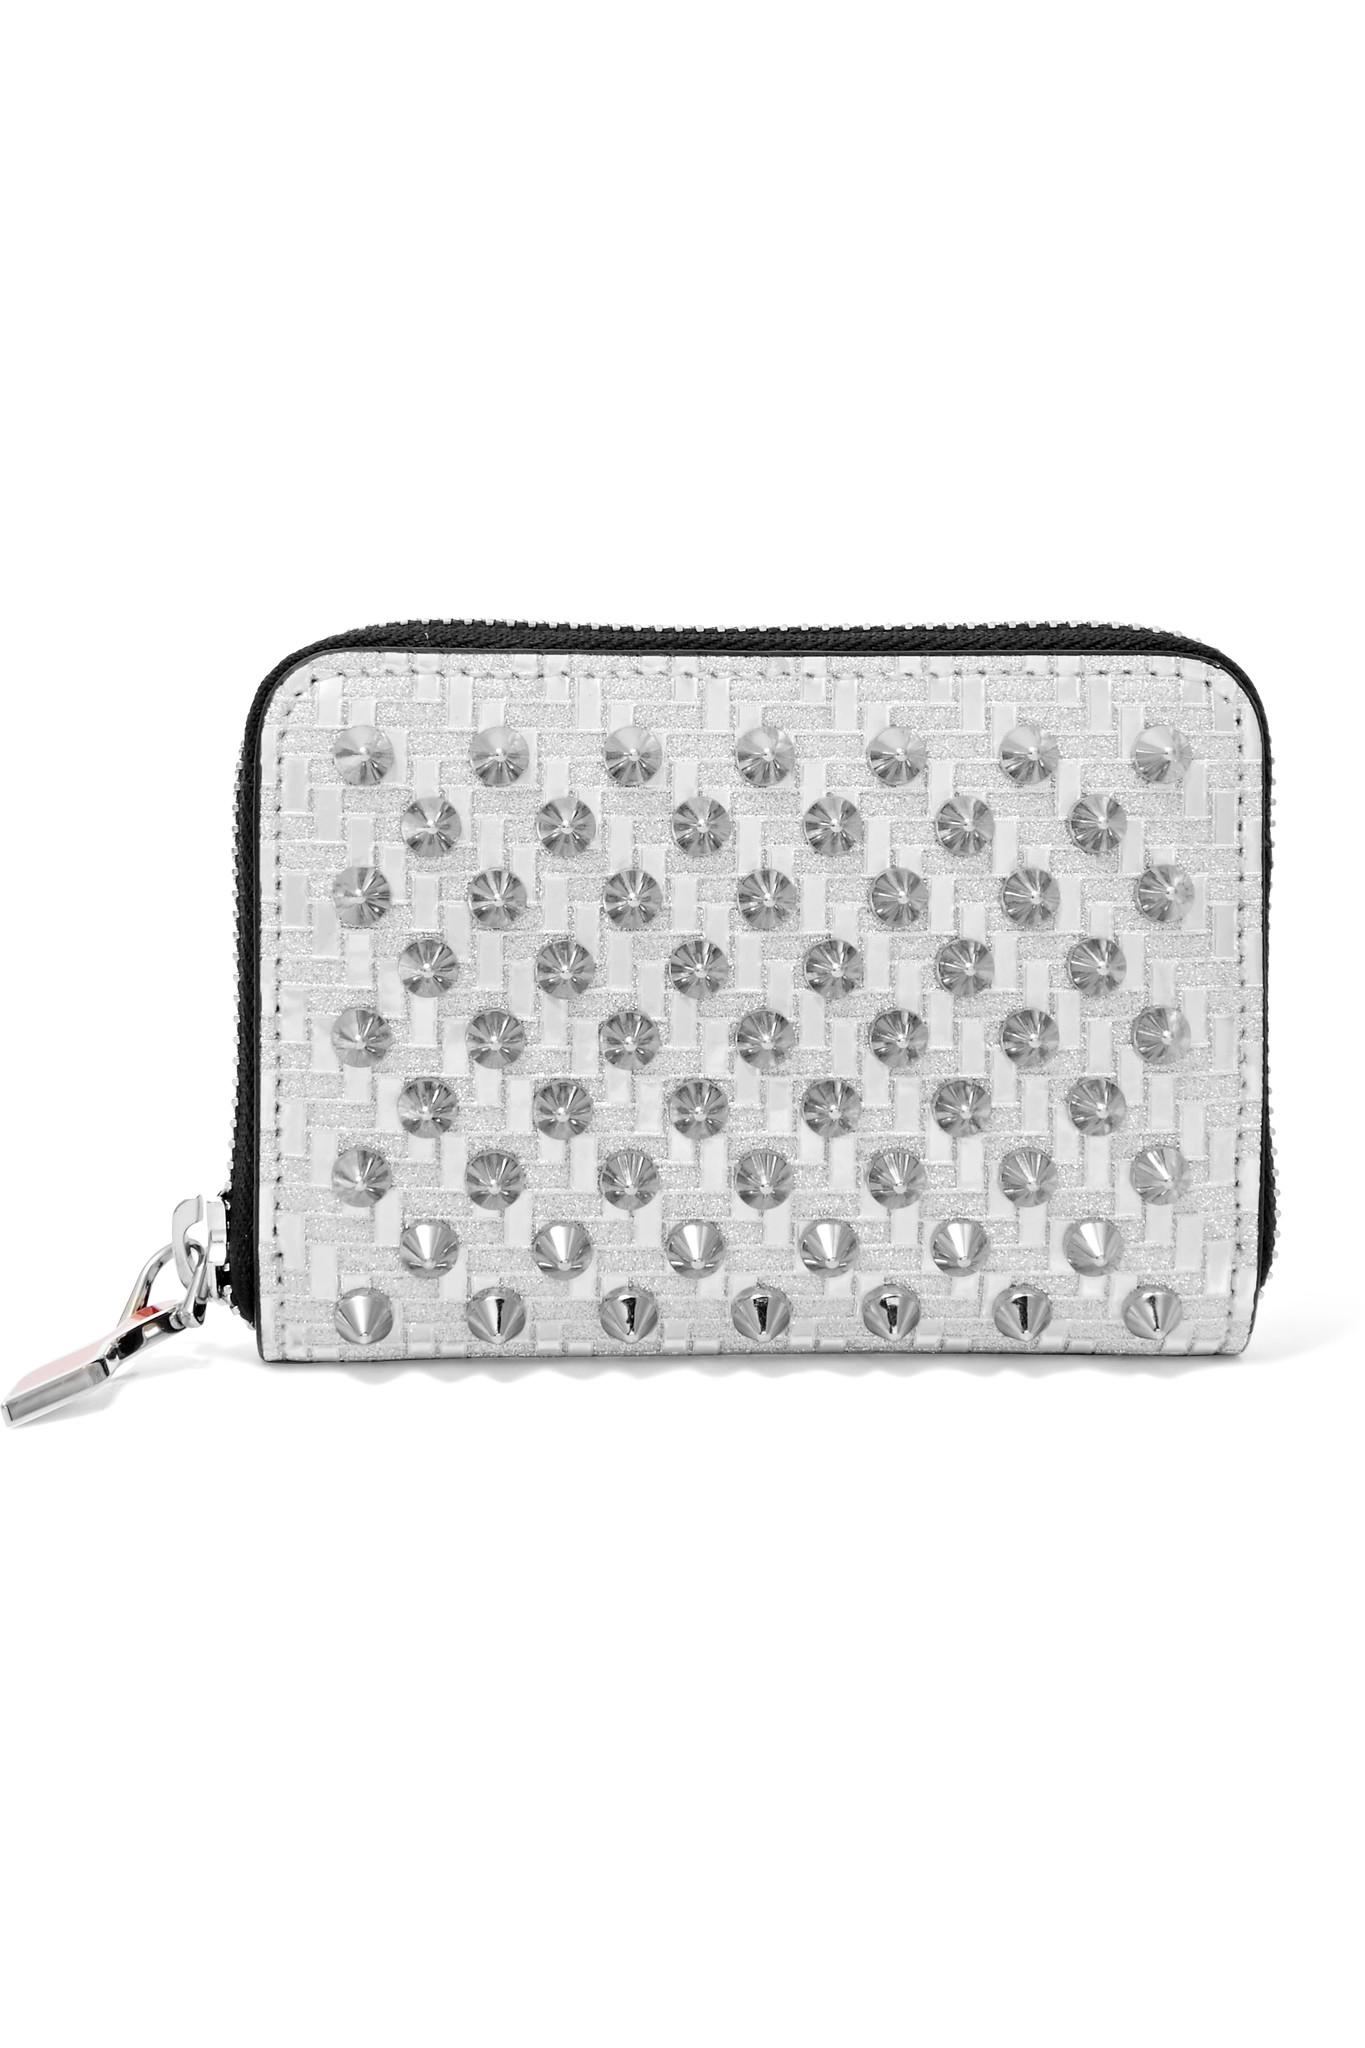 Panettone Spiked Glittered Metallic Leather Continental Wallet - Silver Christian Louboutin WkxbC7